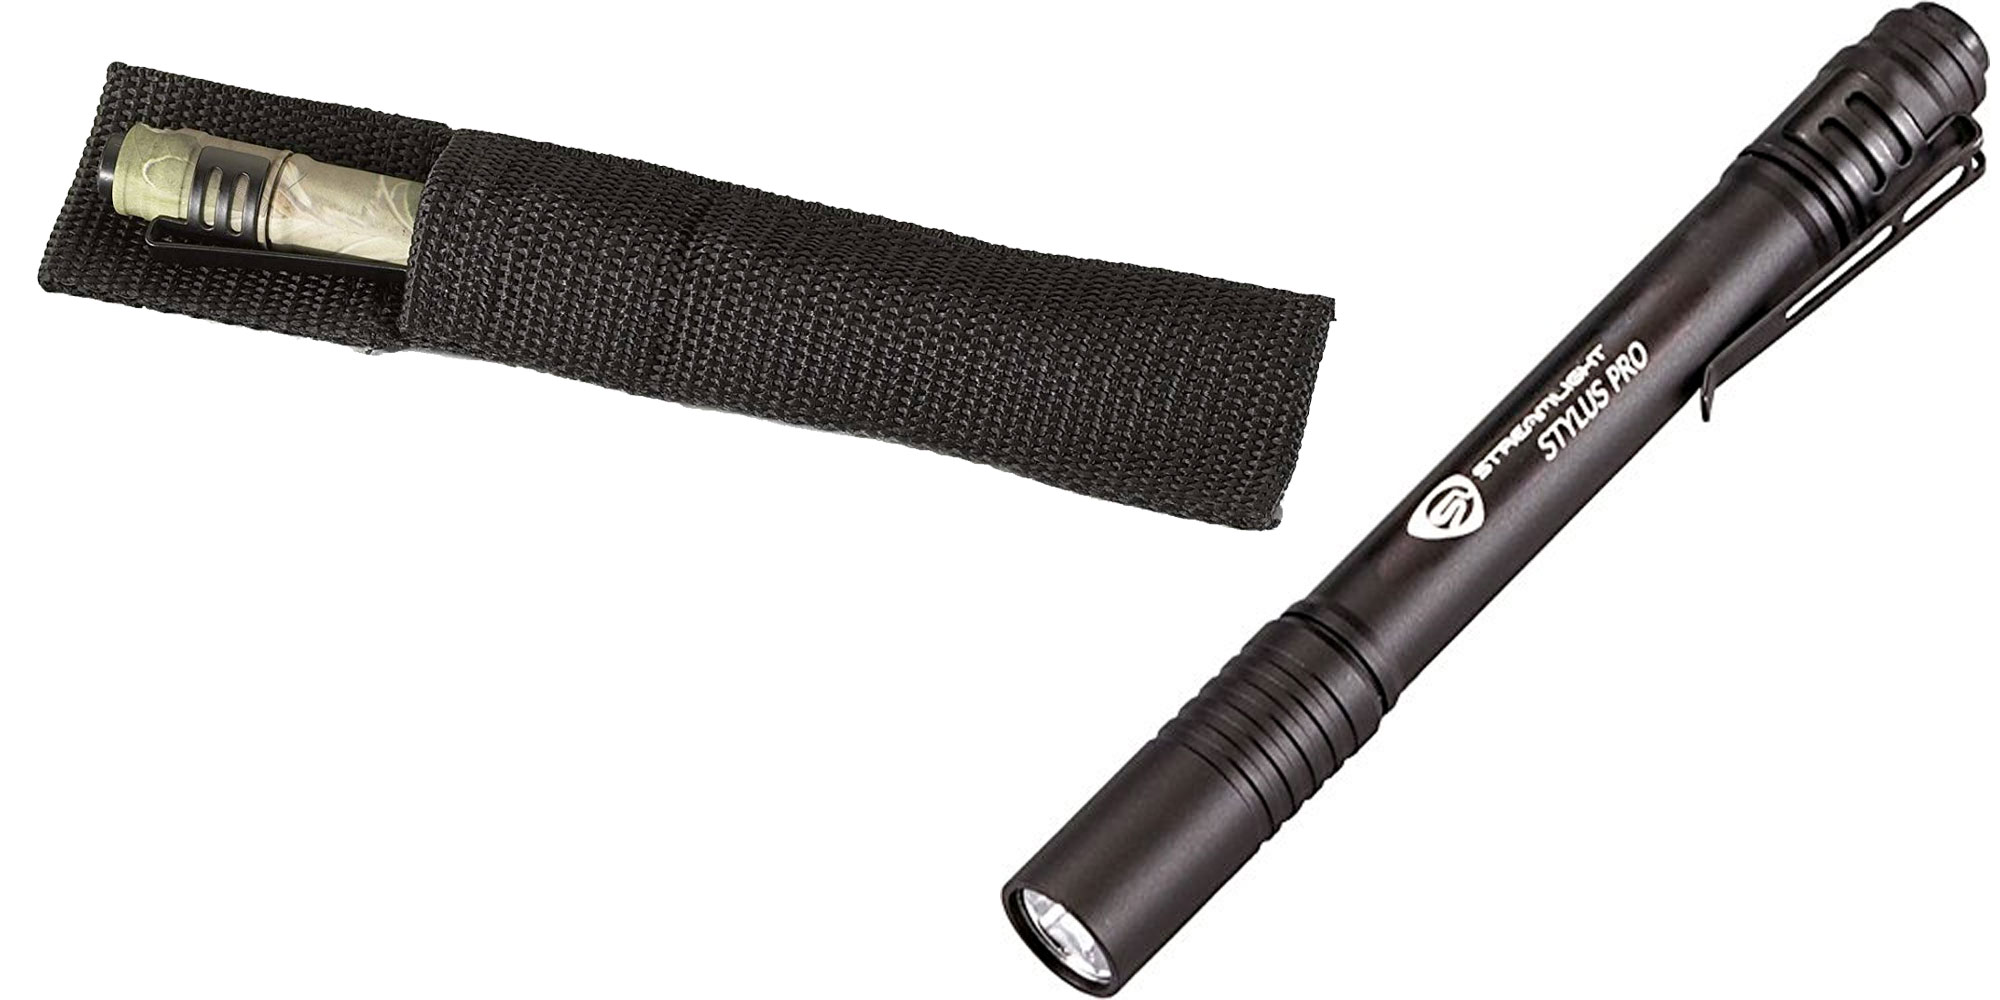 Streamlight's highly-rated Stylus Pro LED Pen Light w/ Holster drops to $15.50 Prime shipped